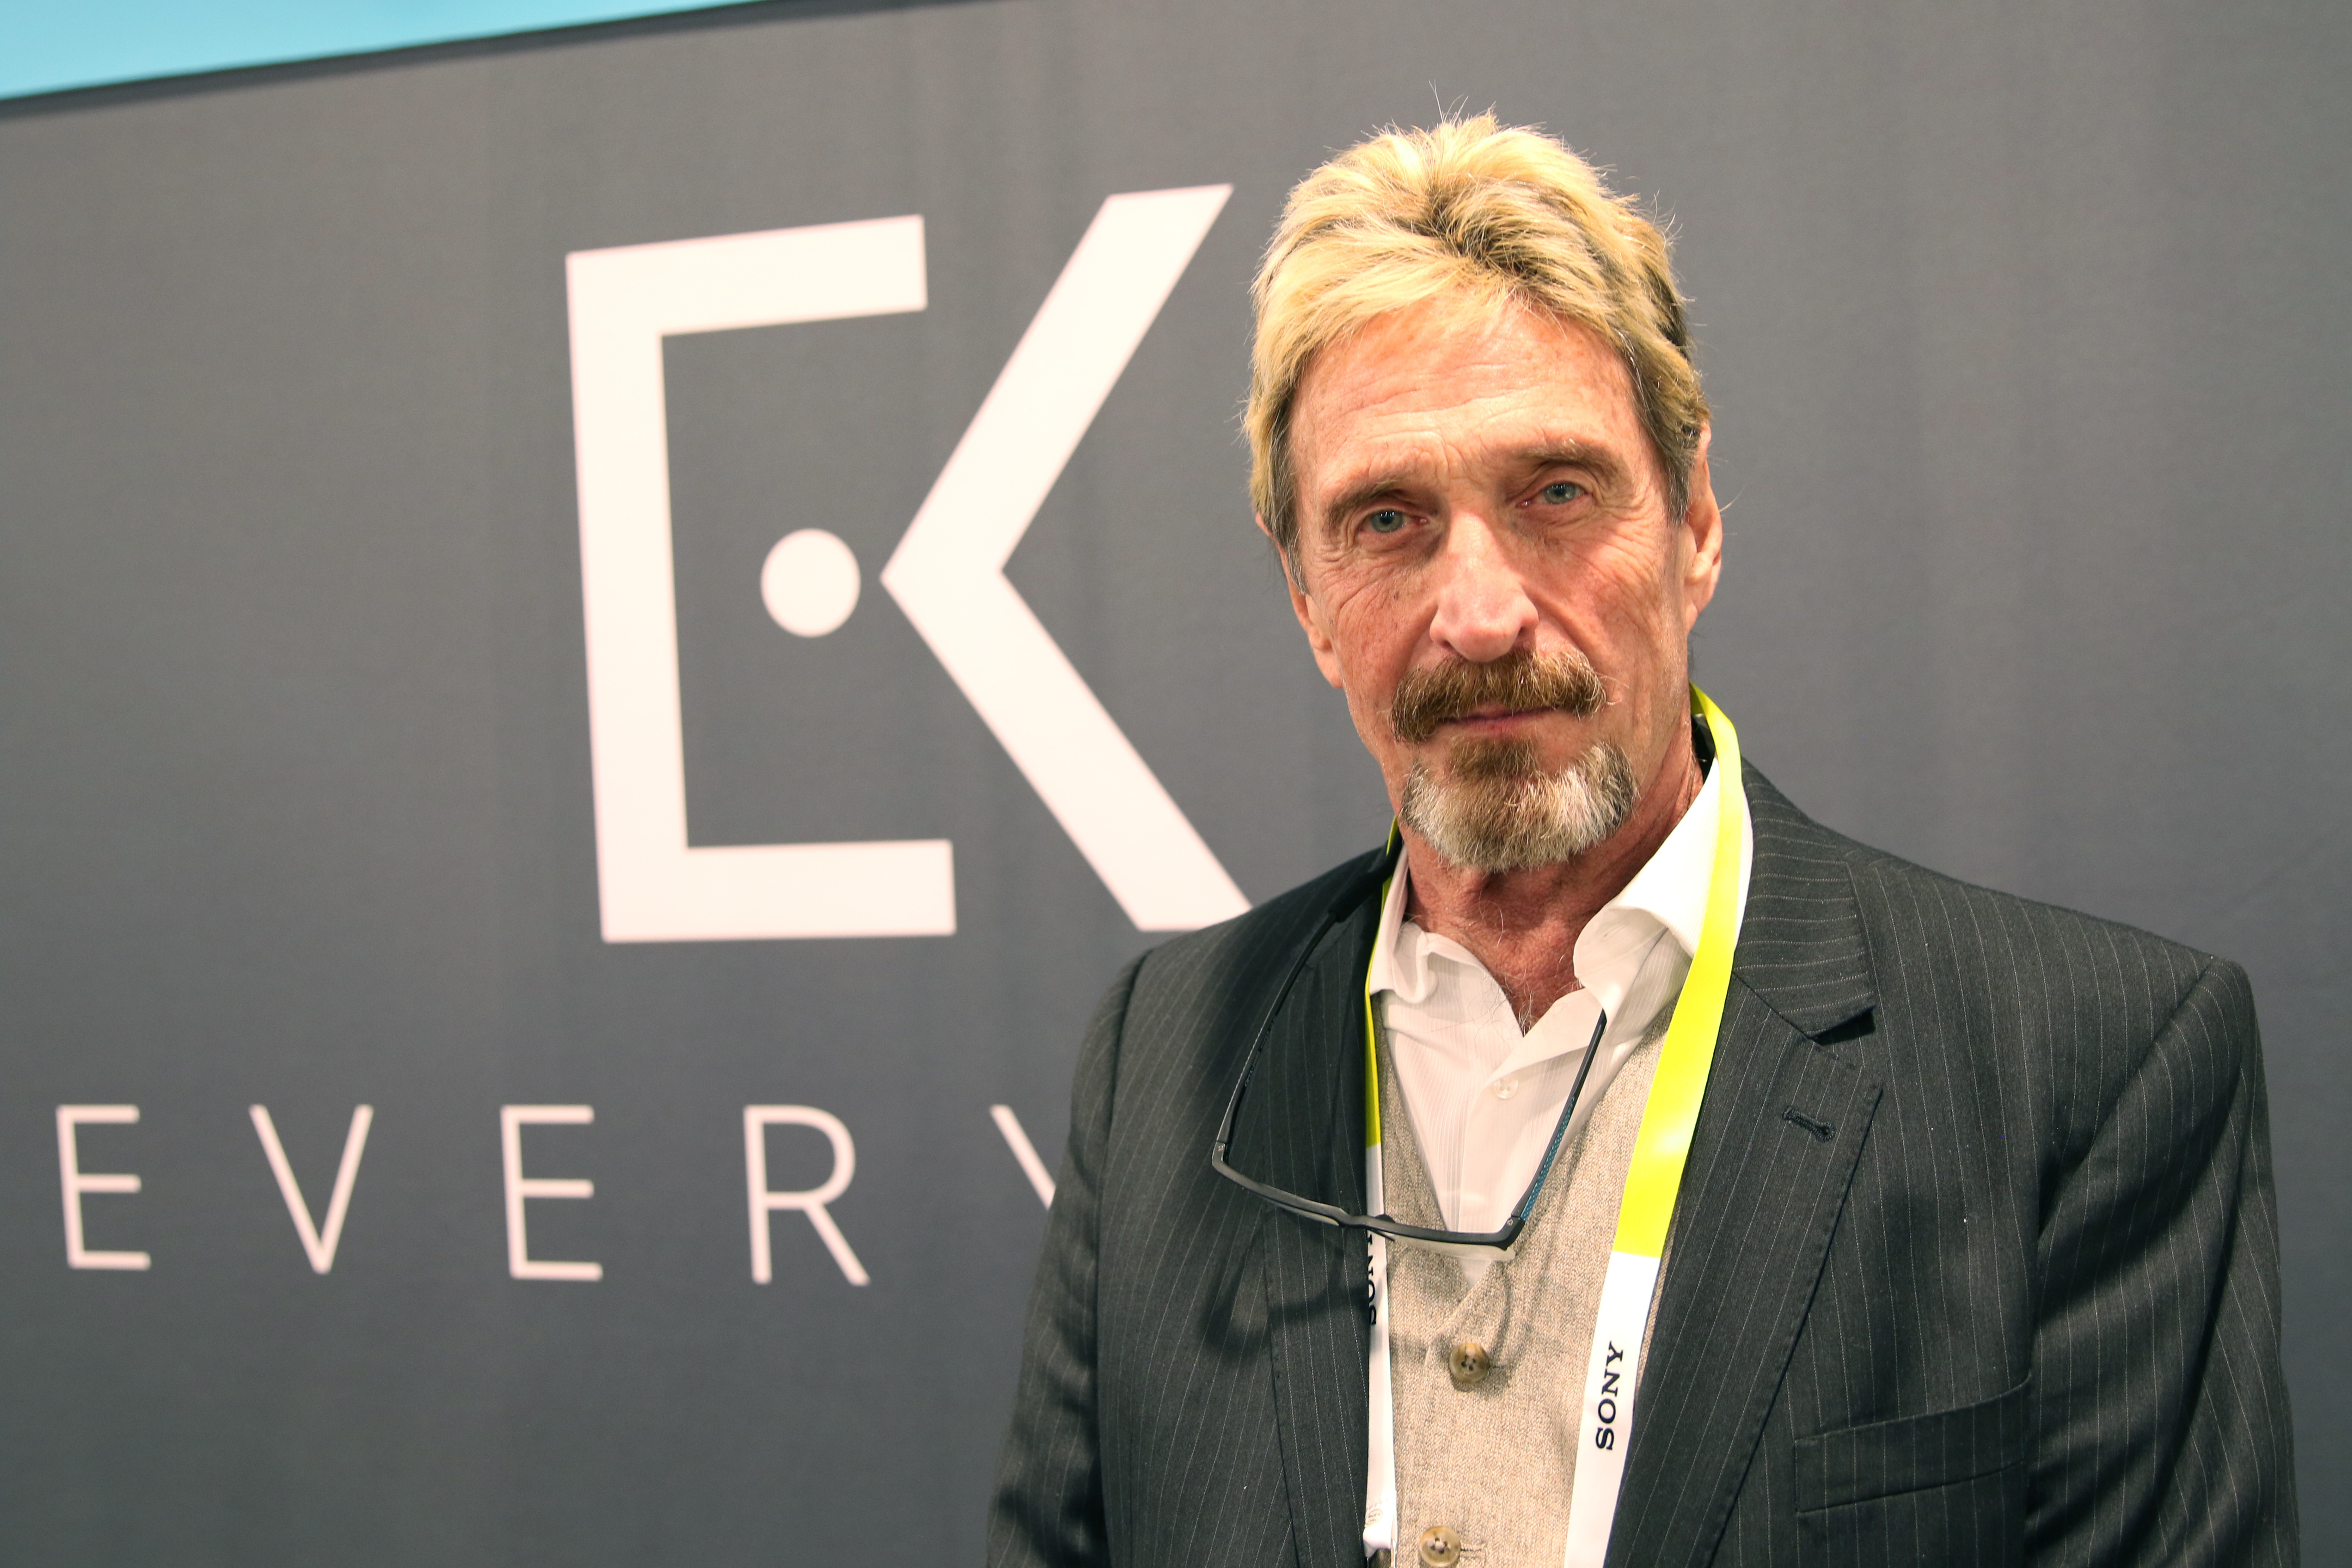 Software Pioneer John McAfee Claims He Was 'Poisoned' By 'Incompetent Enemies'